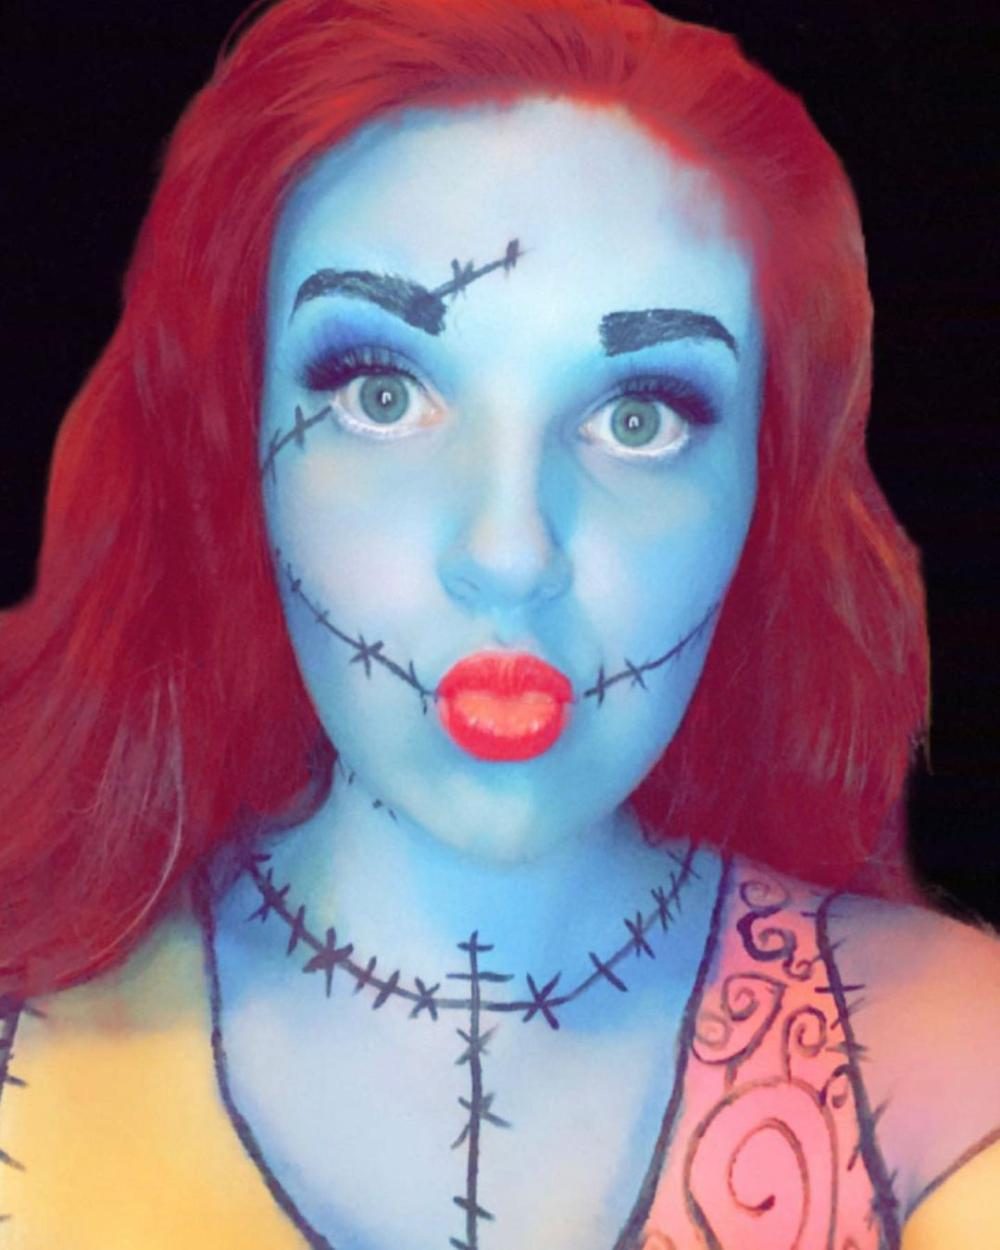 Sally from the nightmare before christmas halloween makeup looks